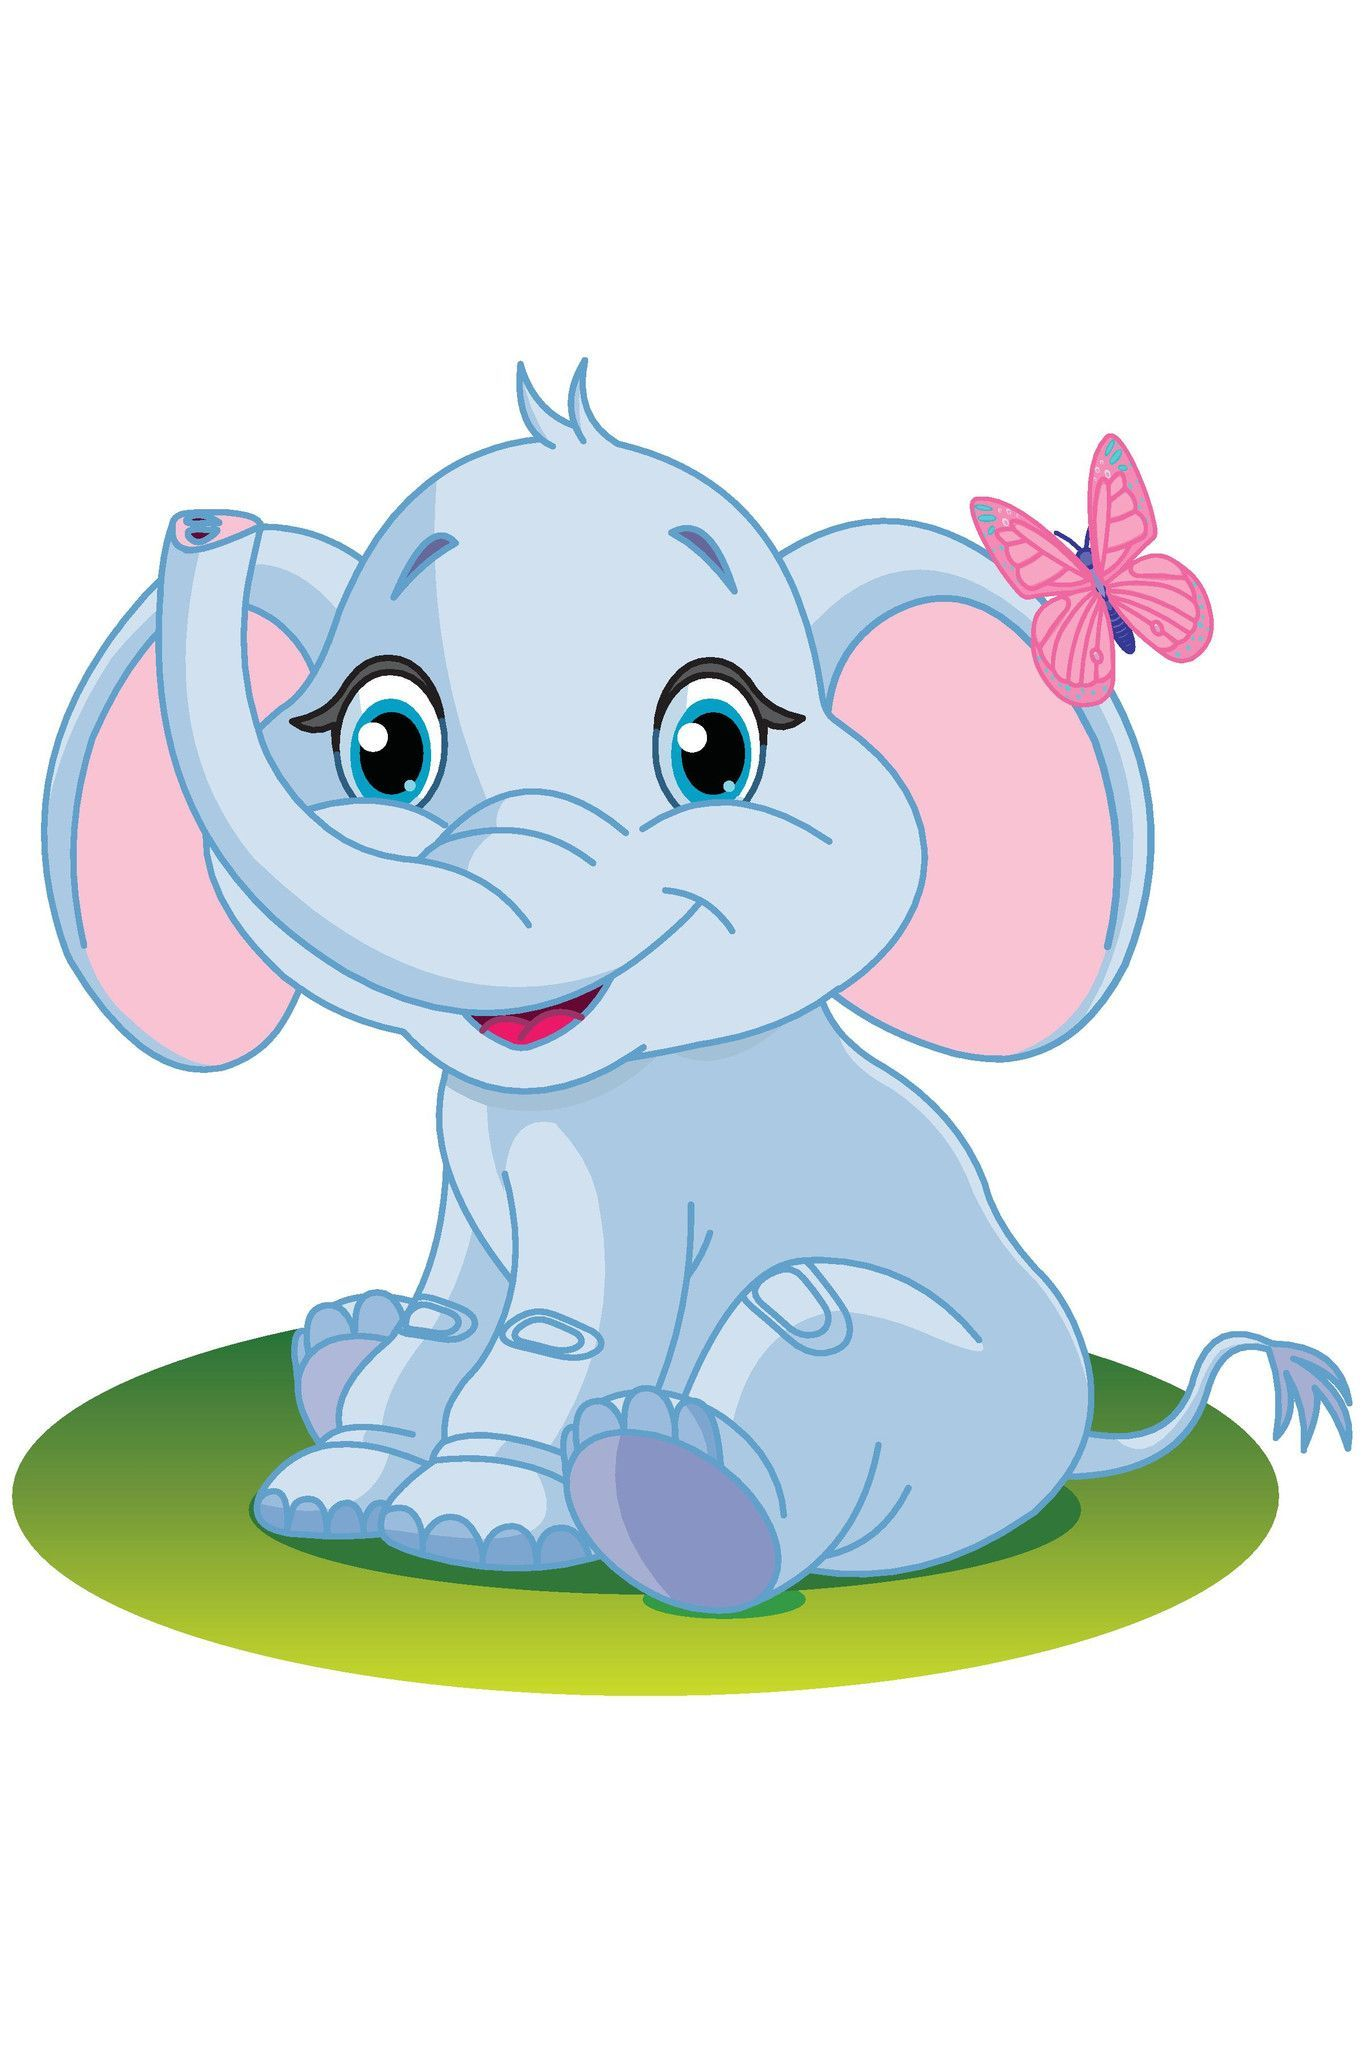 Elephant Accent Panels Child, Babies and Clip art